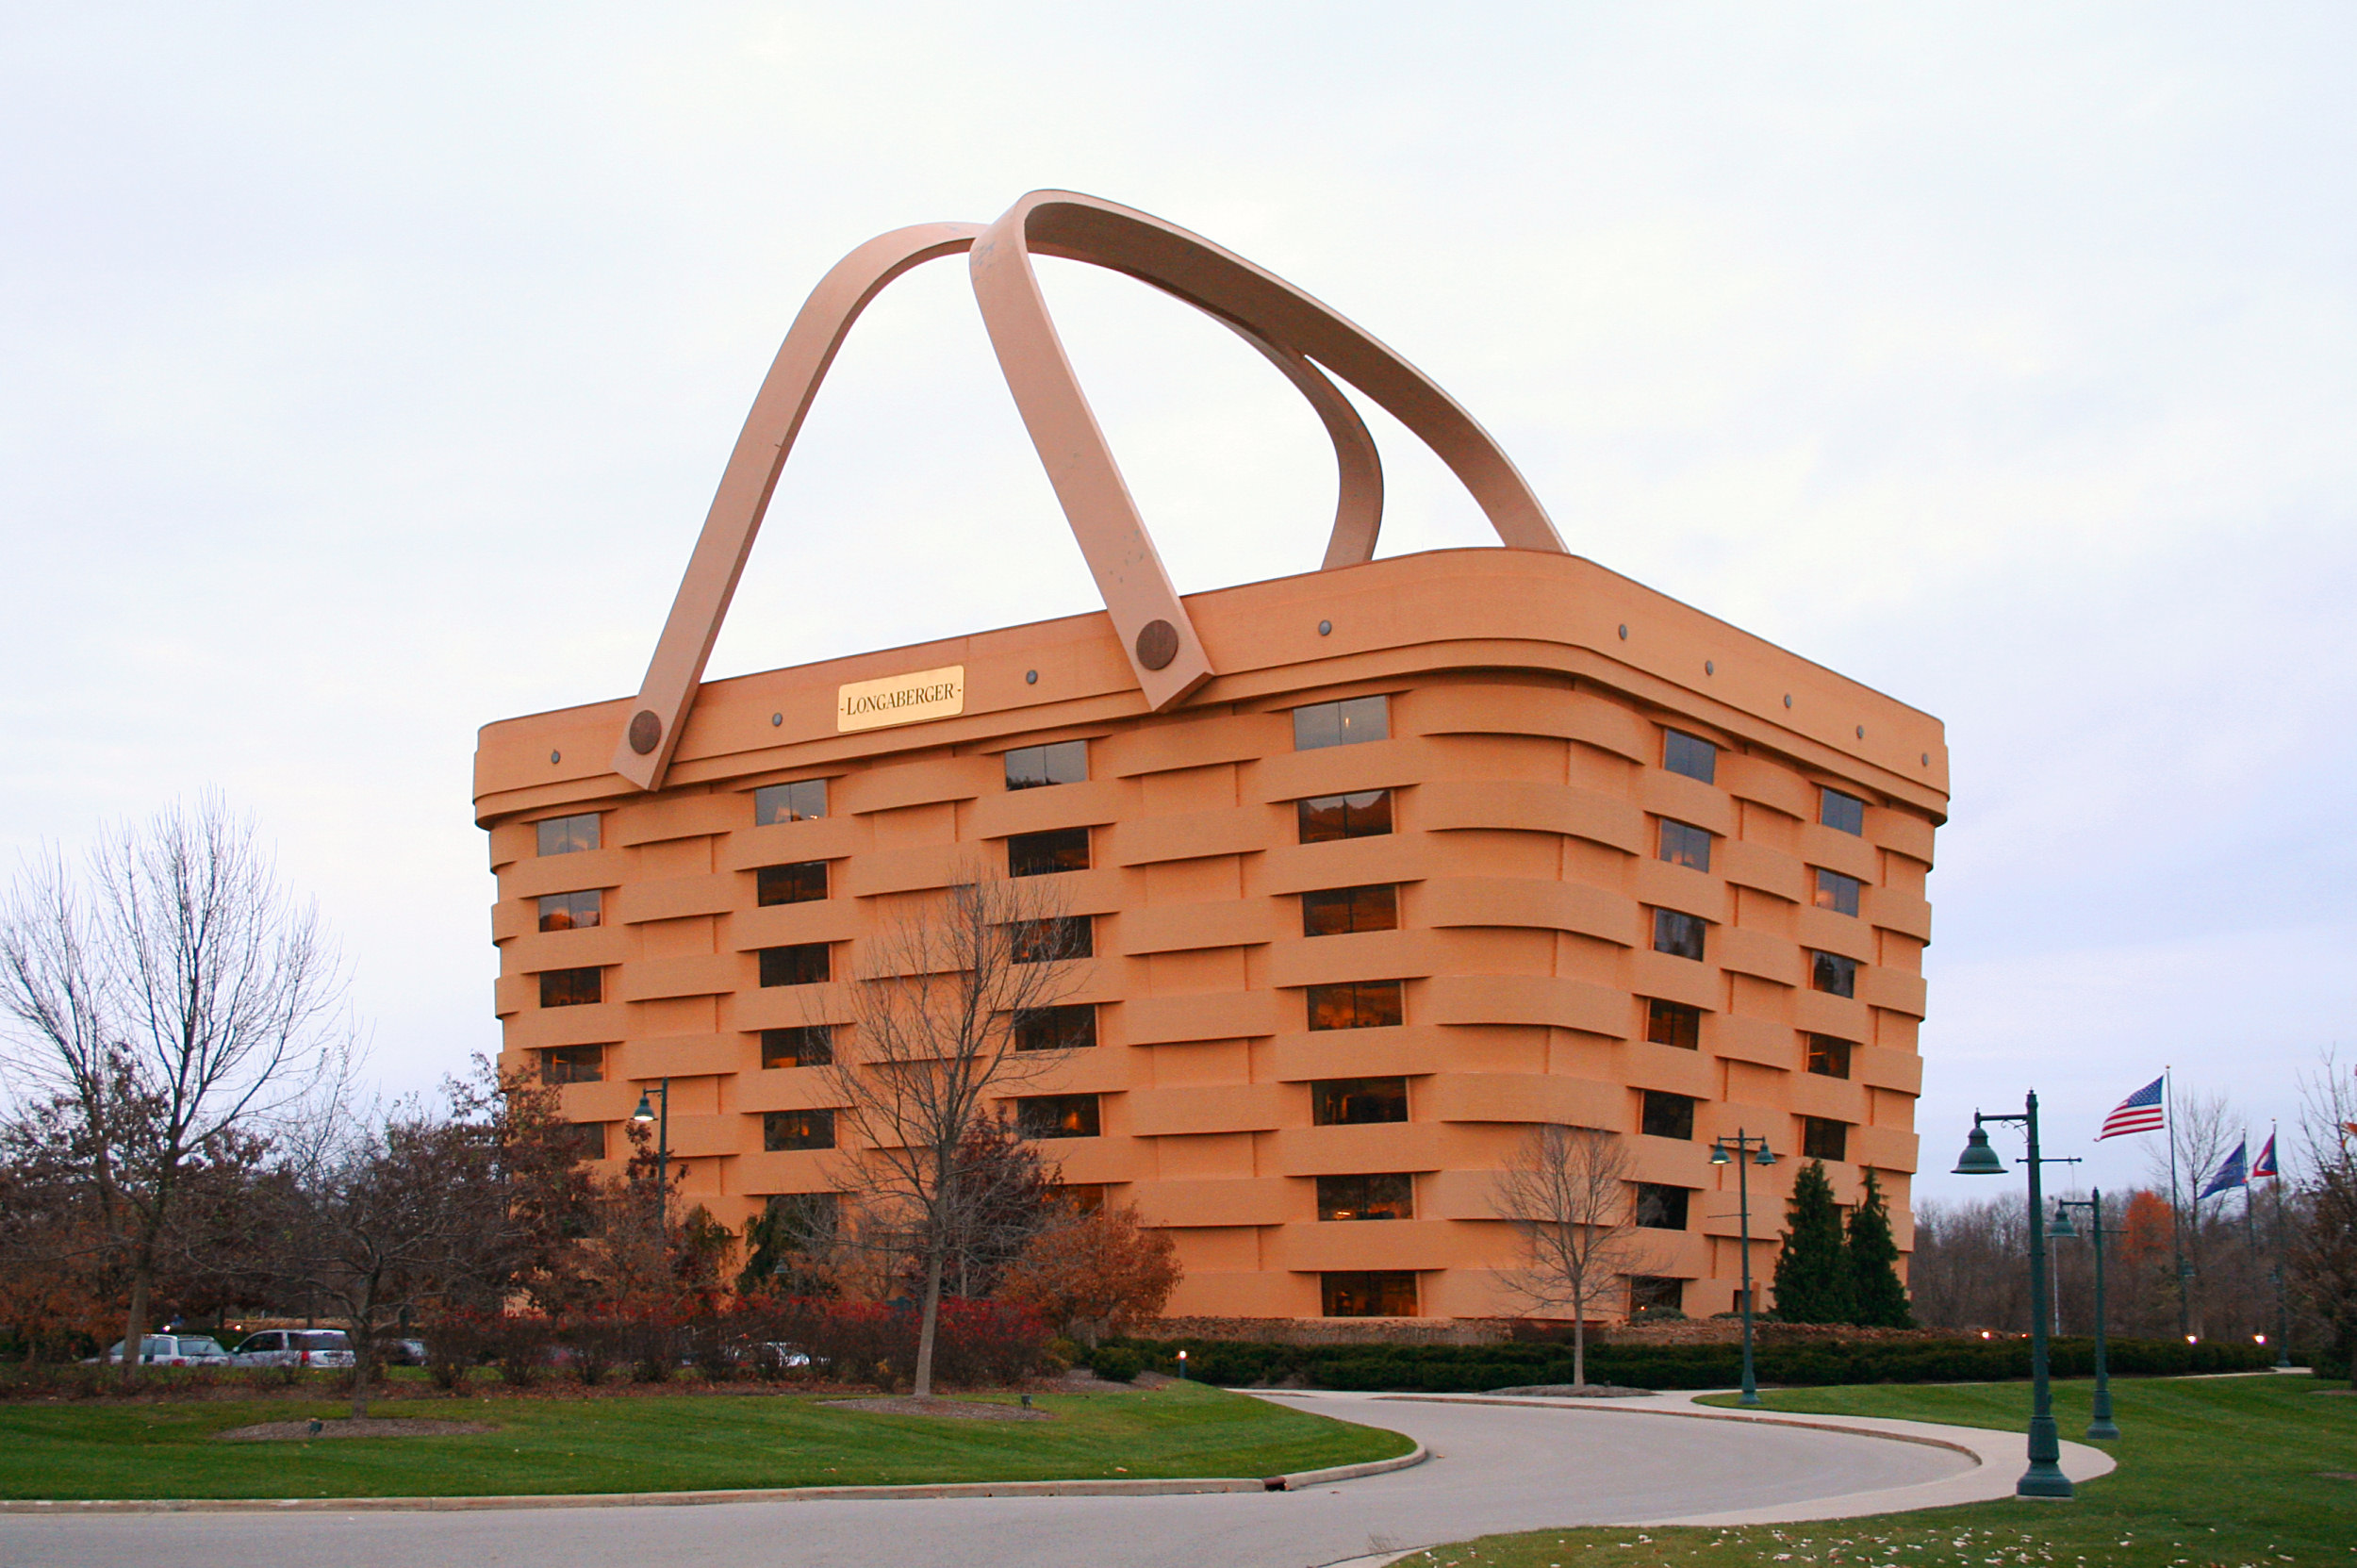 The Longaberger Company operates a museum in this building that has been designed to resemble one of their signature baskets.